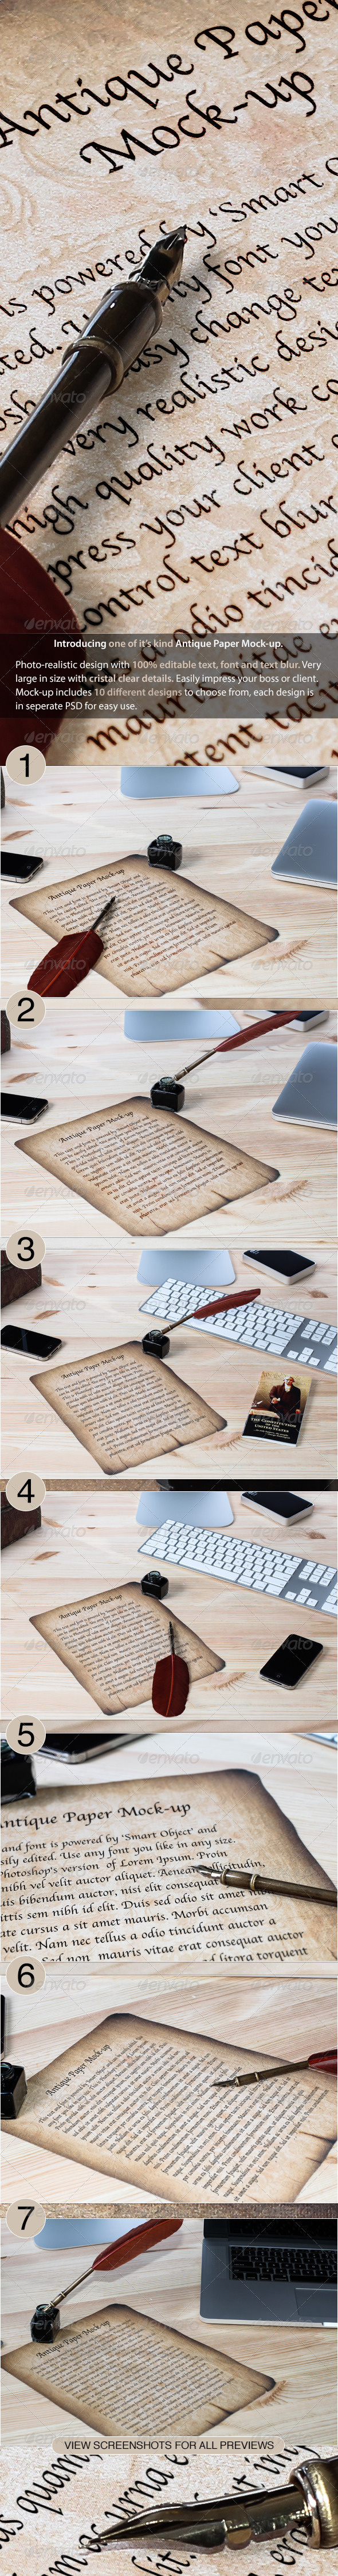 GraphicRiver Antique Paper Mock-up 3404744